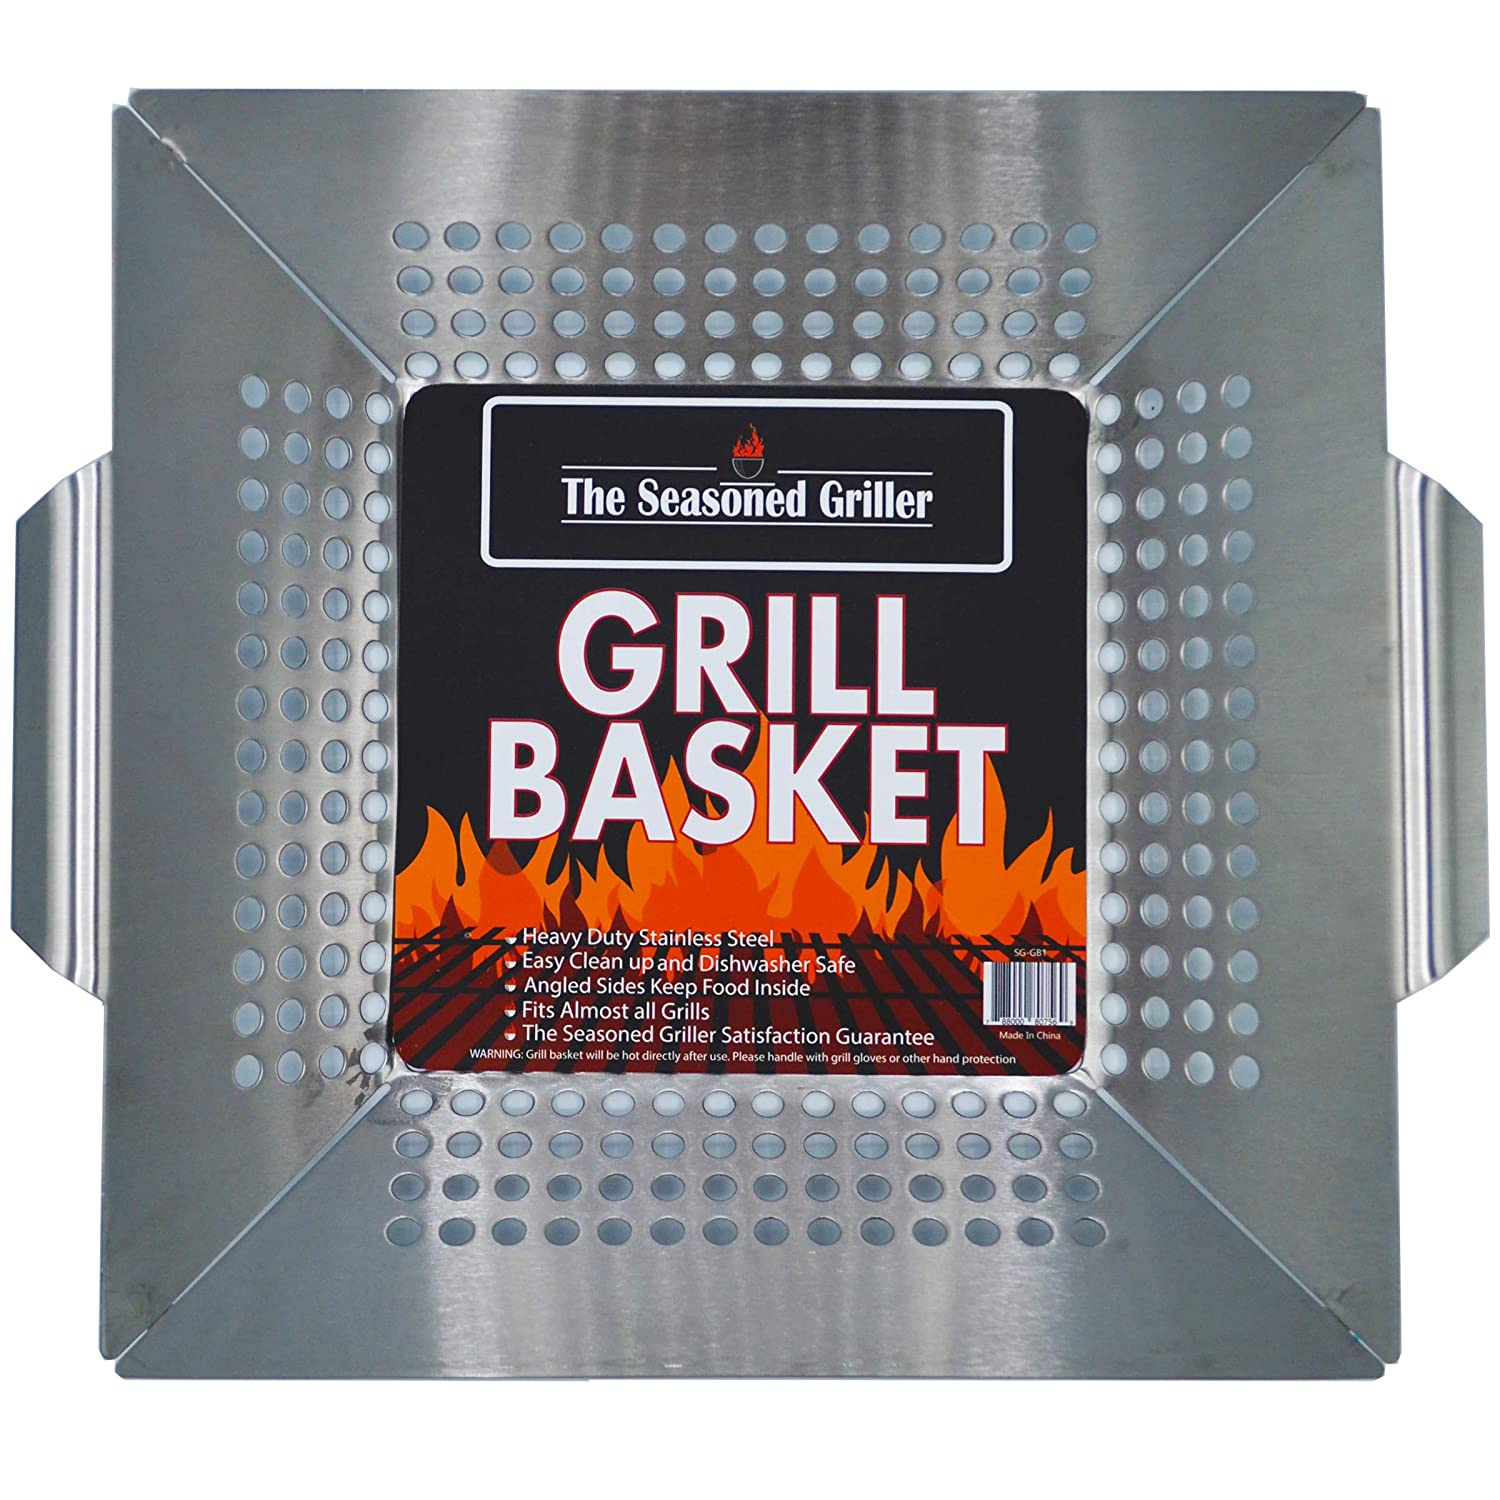 Professional Grade Stainless Steel Grill Basket, BBQ Accessories, Grill Your Meats, Vegetables, Seafood, Pizza, Kabobs. Fits Charcoal, Gas Grills Camping Cookware Grill Tool For Dad